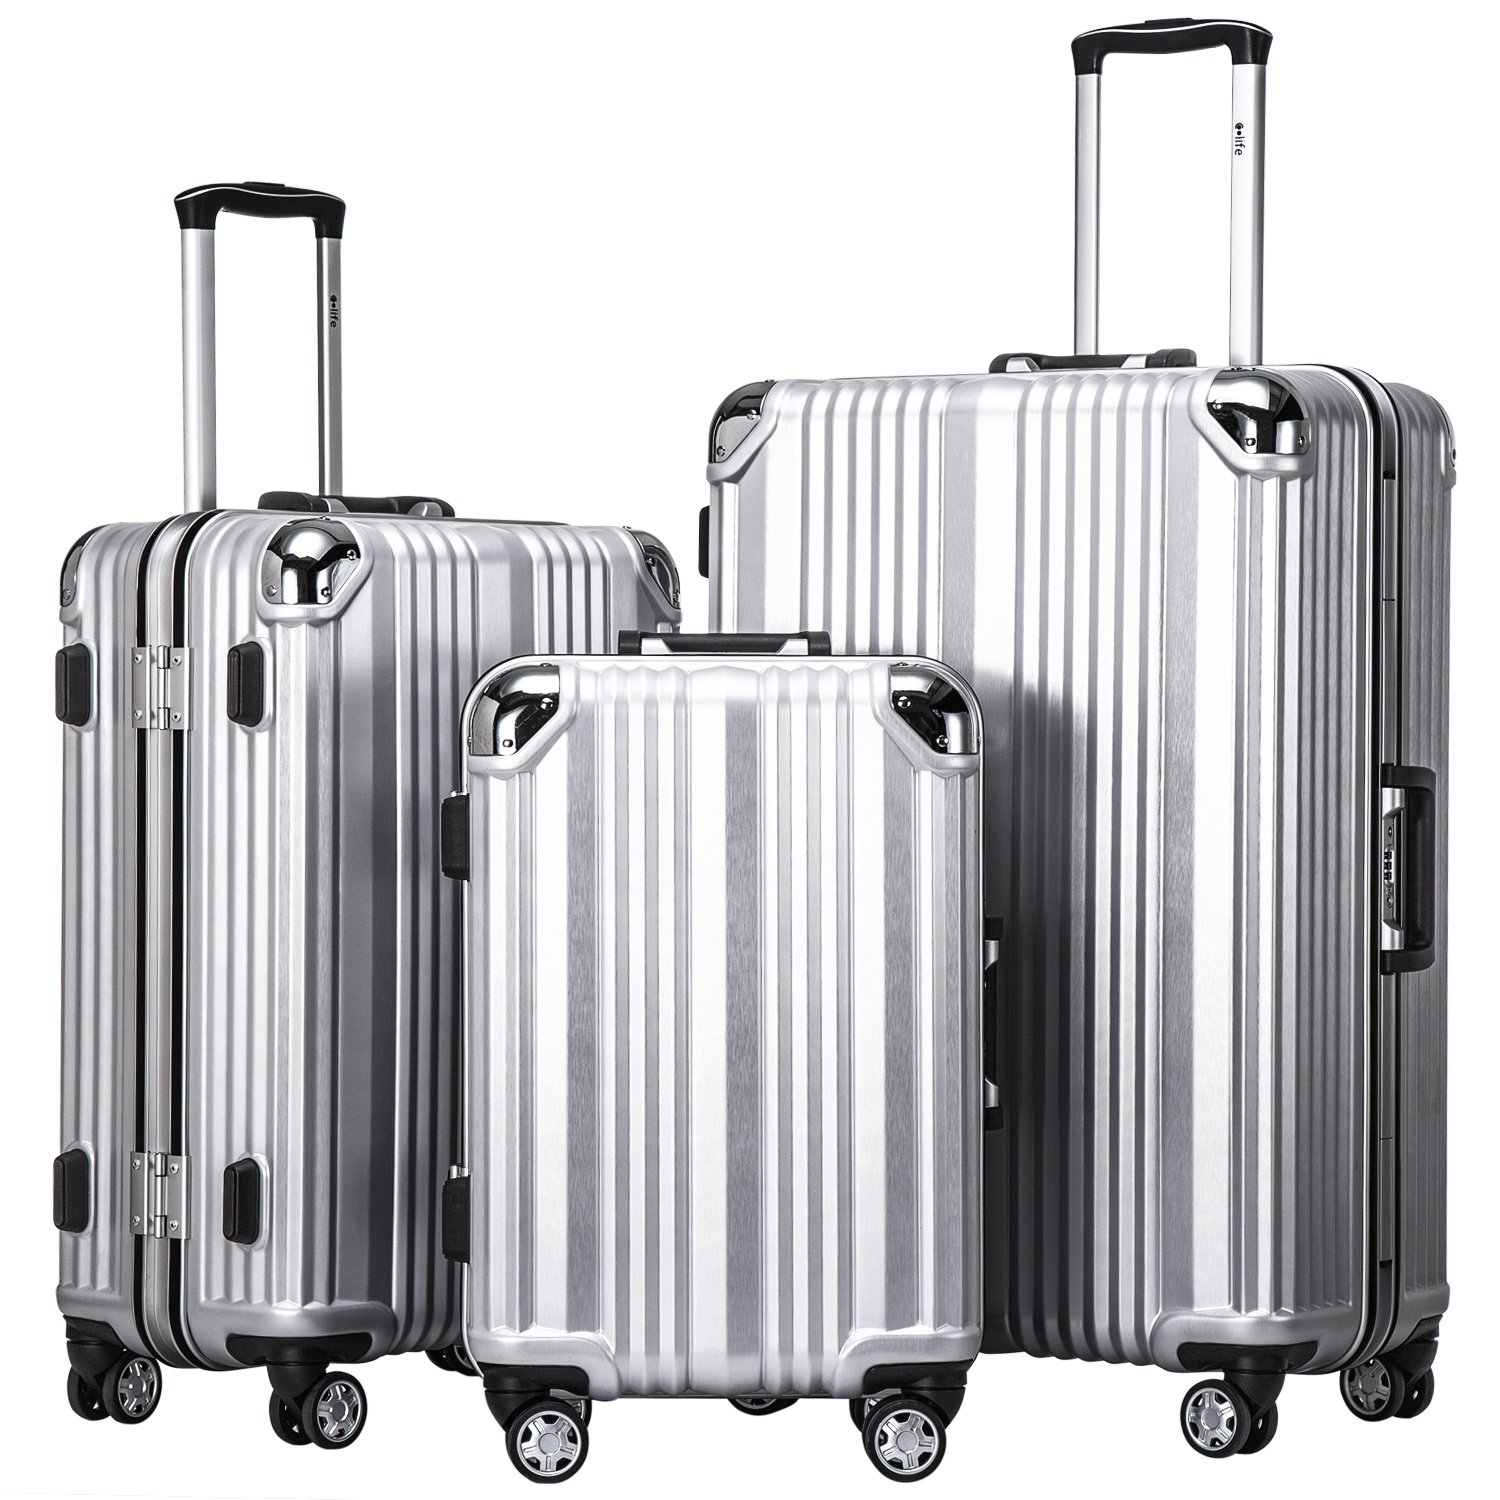 Coolife Luggage Aluminium Frame Suitcase 3 Piece Set with TSA Lock 100%PC (SLIVER) by Coolife